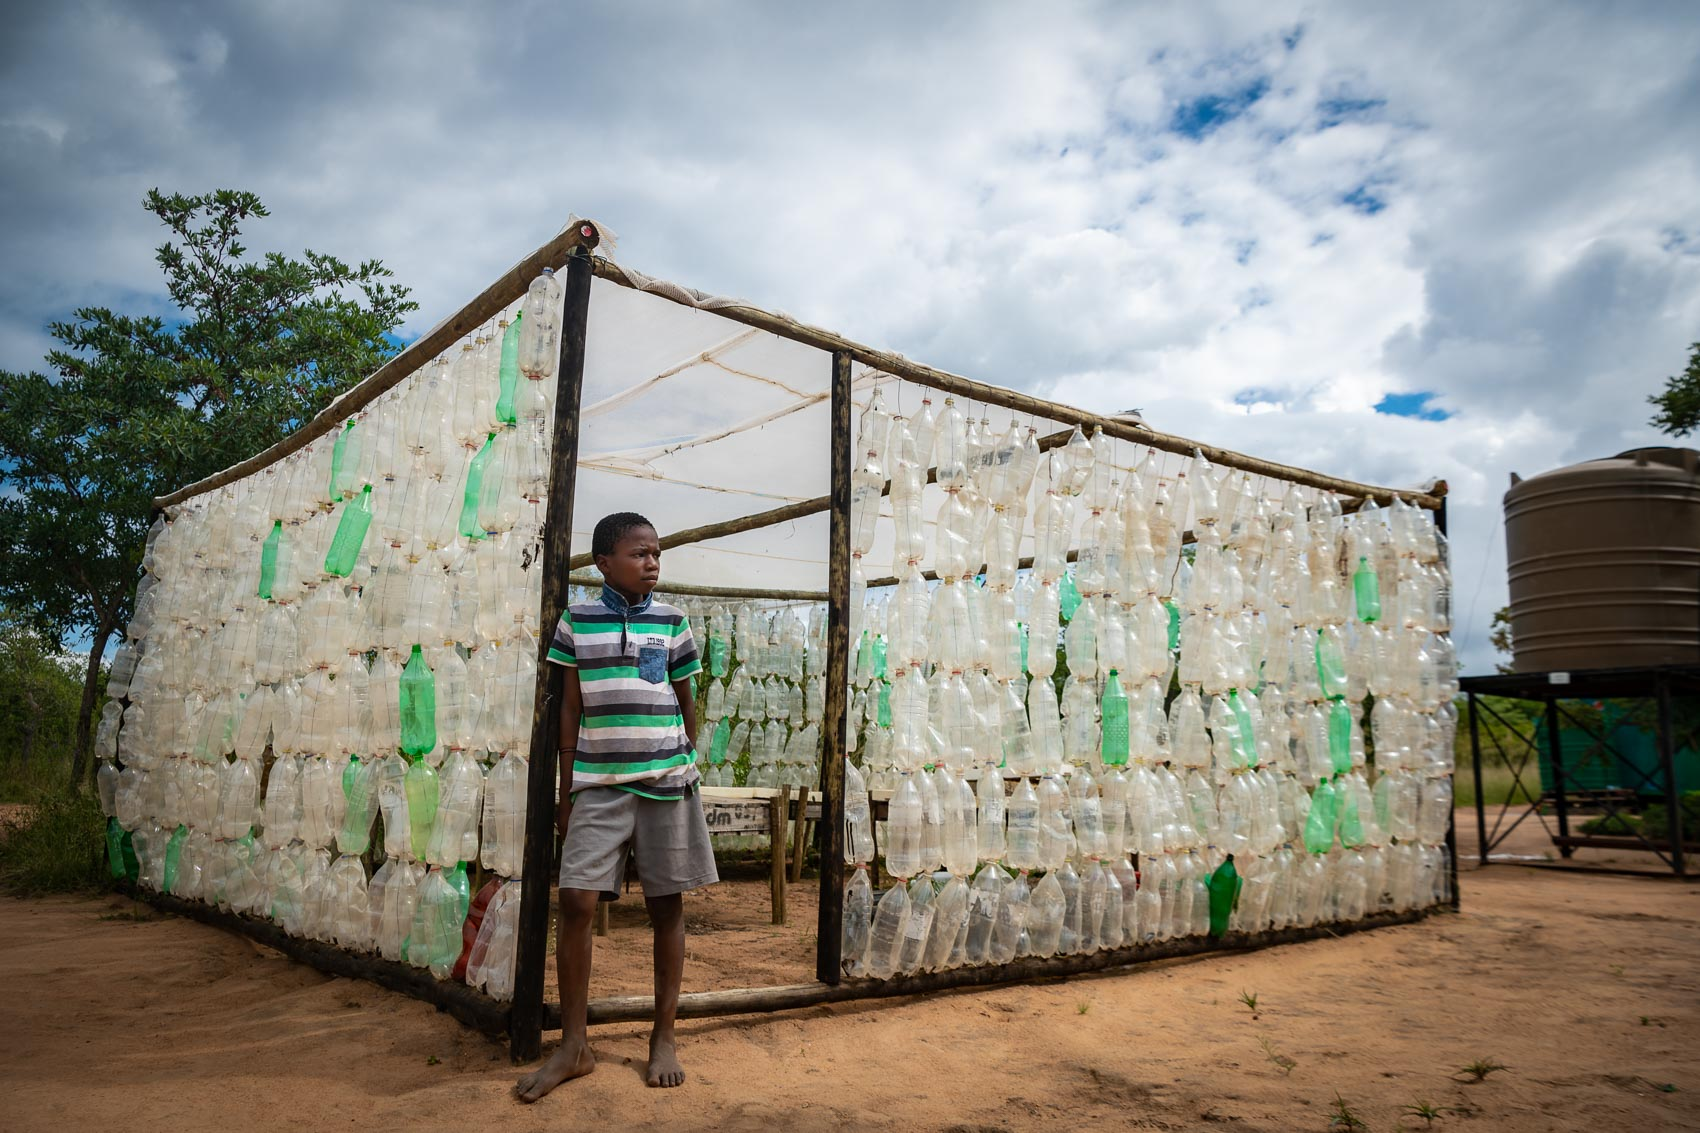 An African boy leaning against a wooden structure made from recycled bottles at Nourish NPO